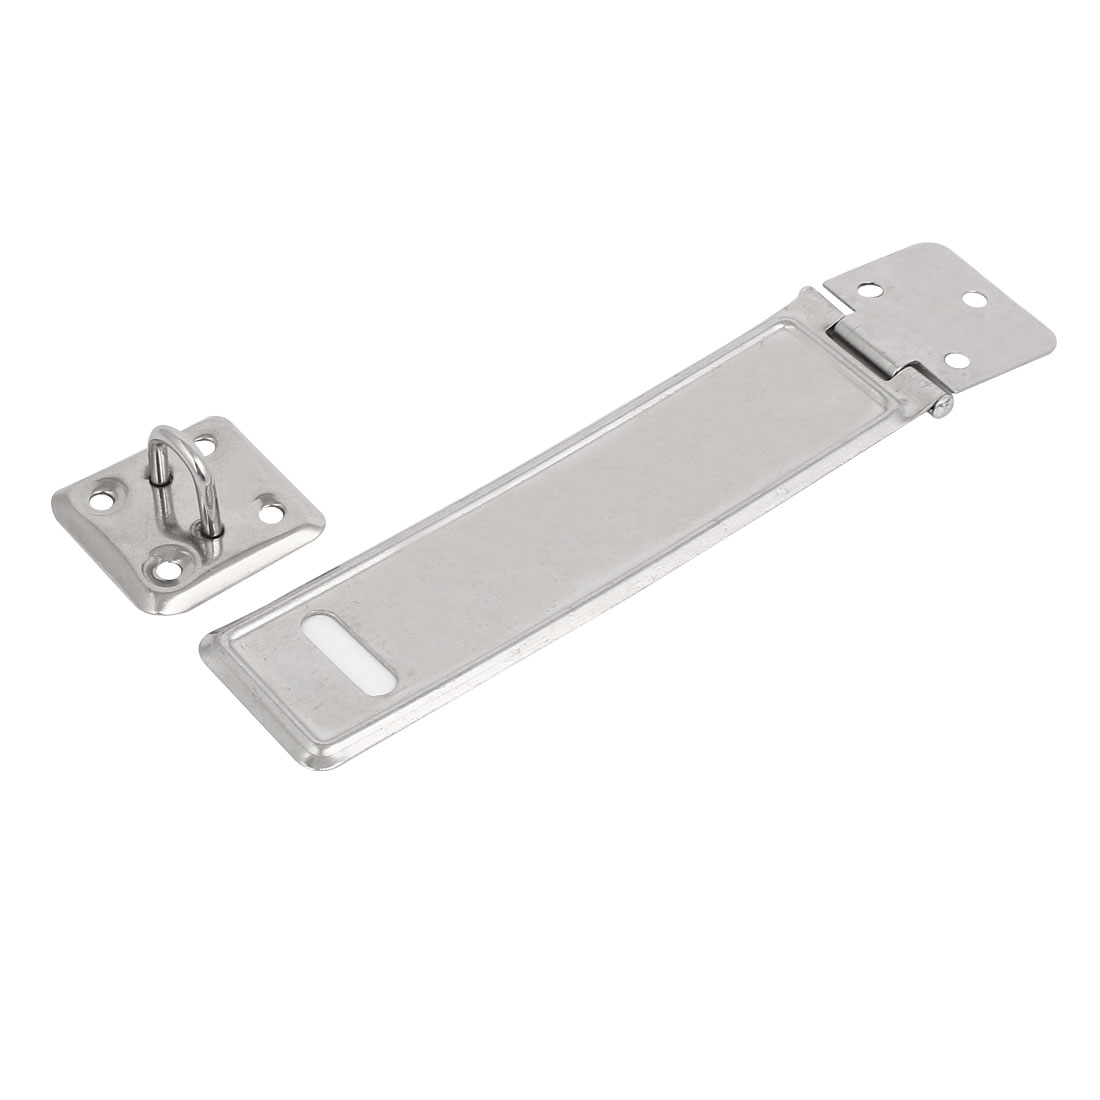 5.5-inch Length Metal Latch Gate Door Lock Safety Hasp Staple Silver Tone